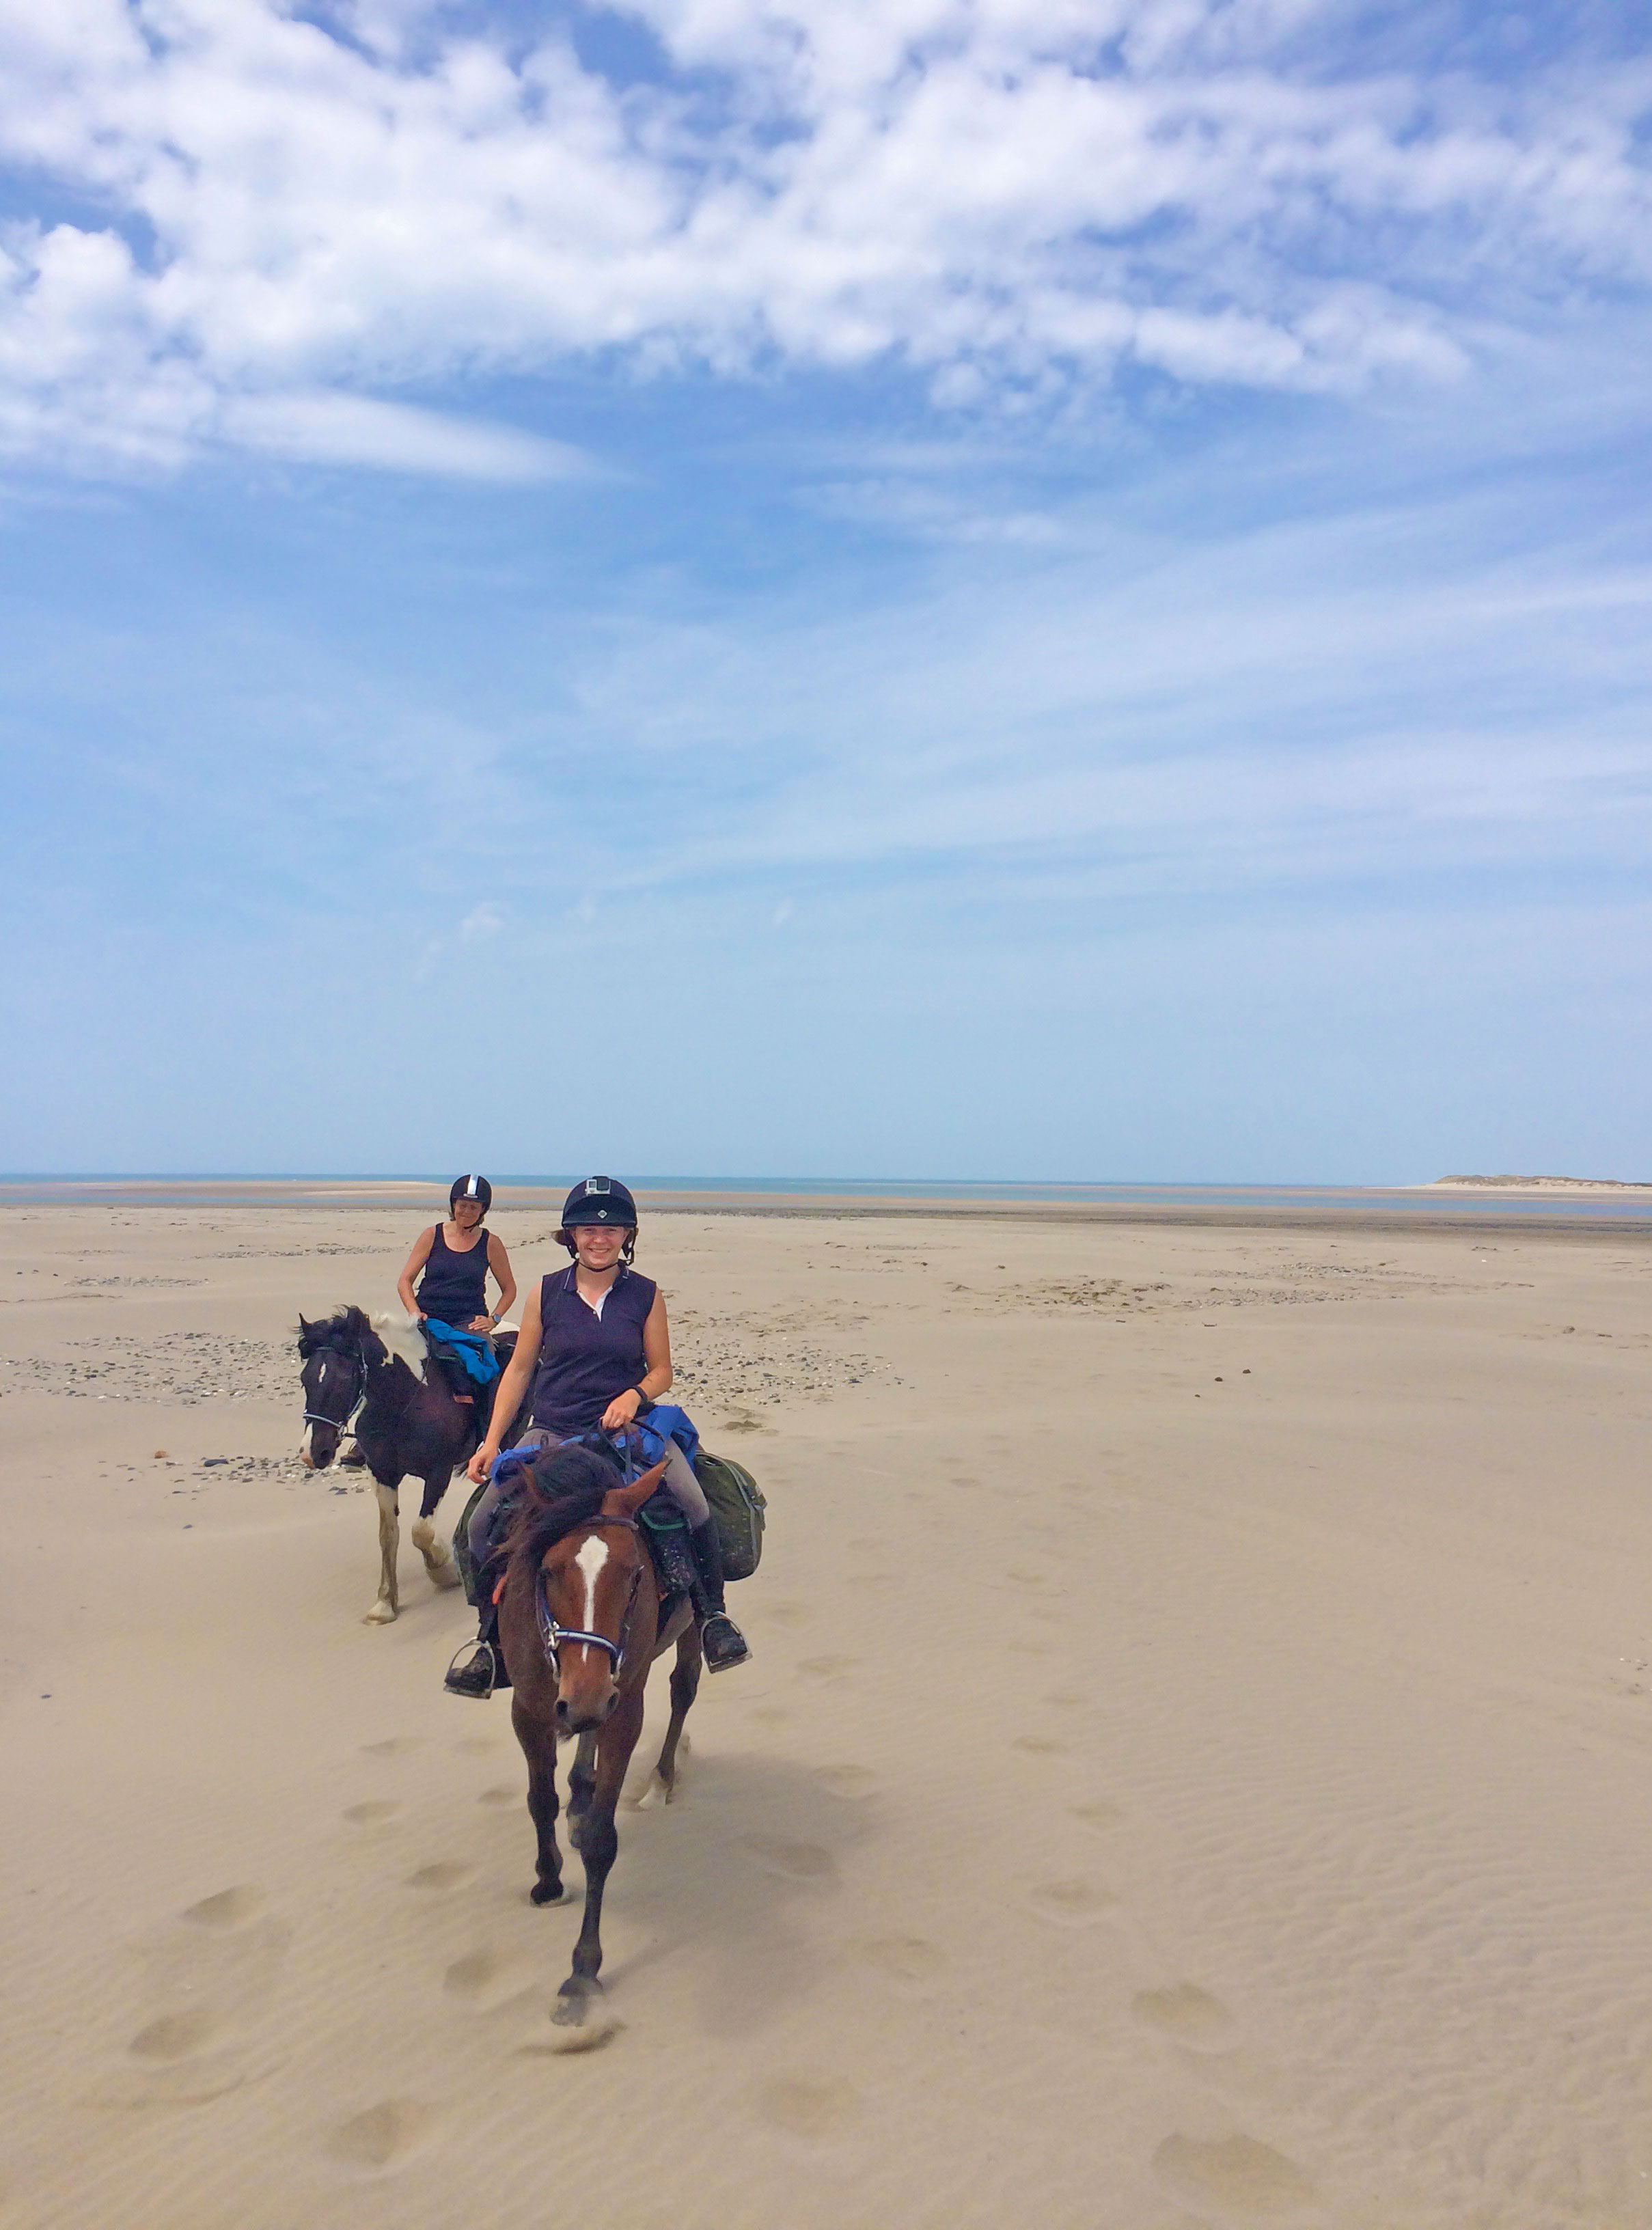 Horses and Riders enjoying the beach at Ynyslas